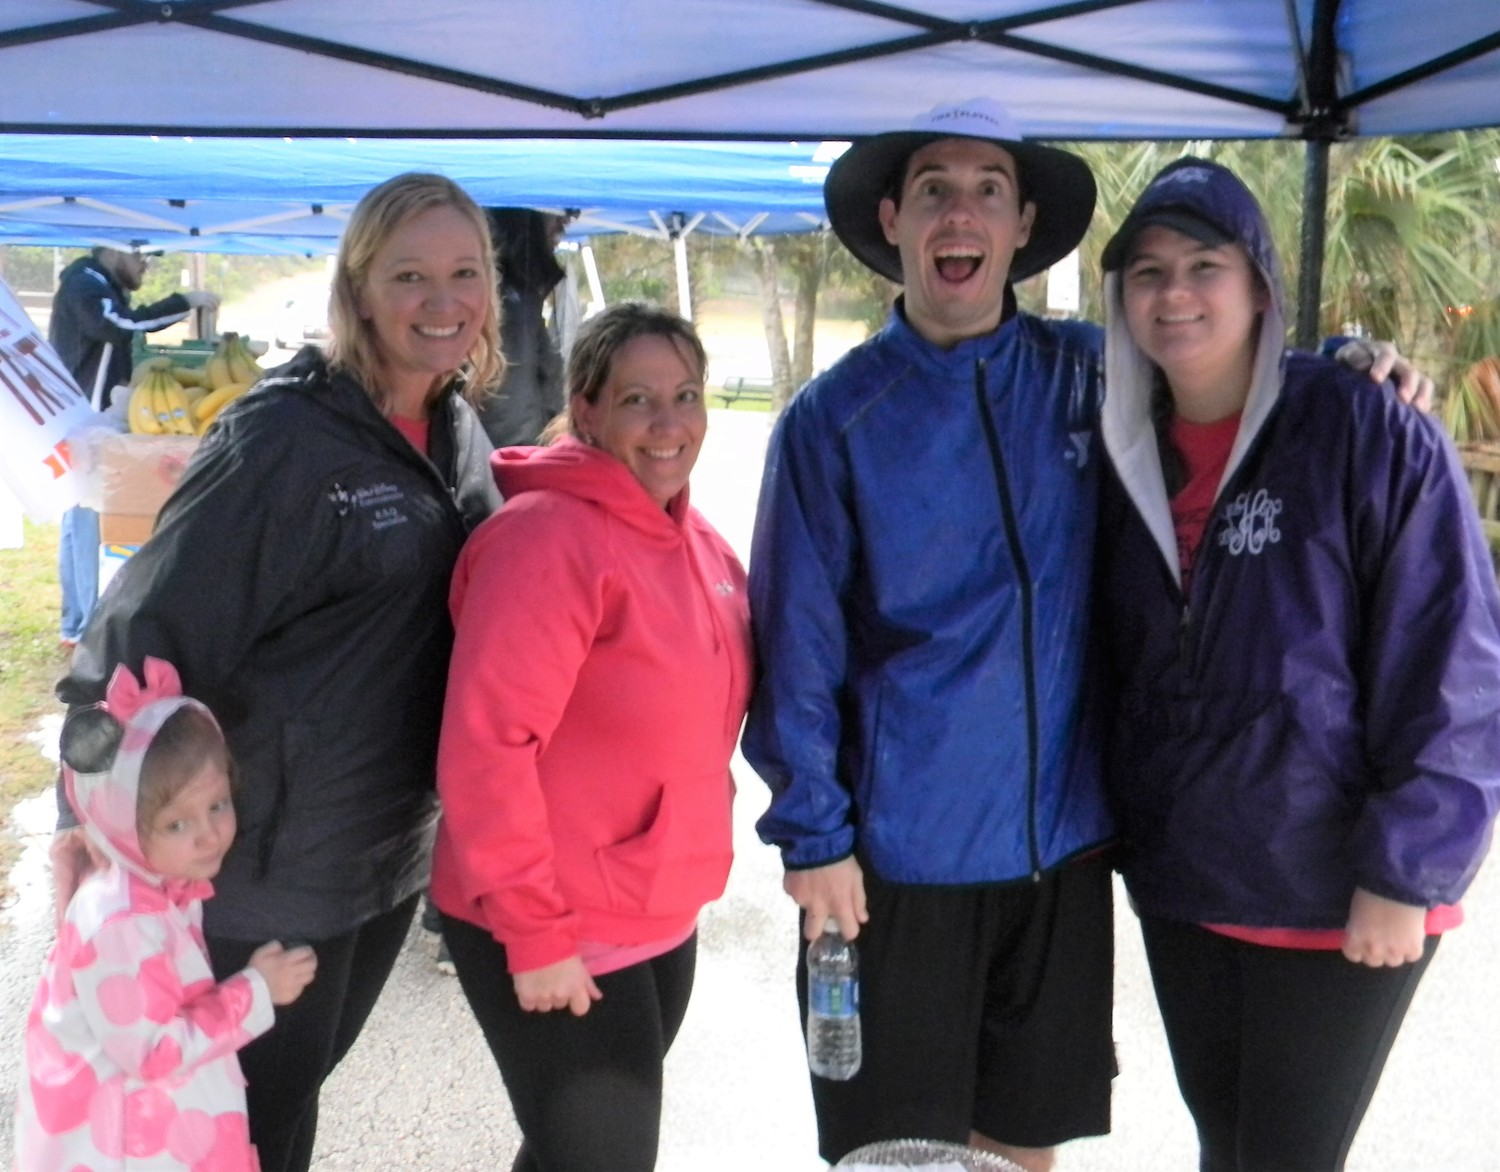 Ponte Vedra YMCA staff and volunteers McKinley O'Neal, Jordan O'Neal, Melissa McGlynn, Sean Ricci and Sydney Hester